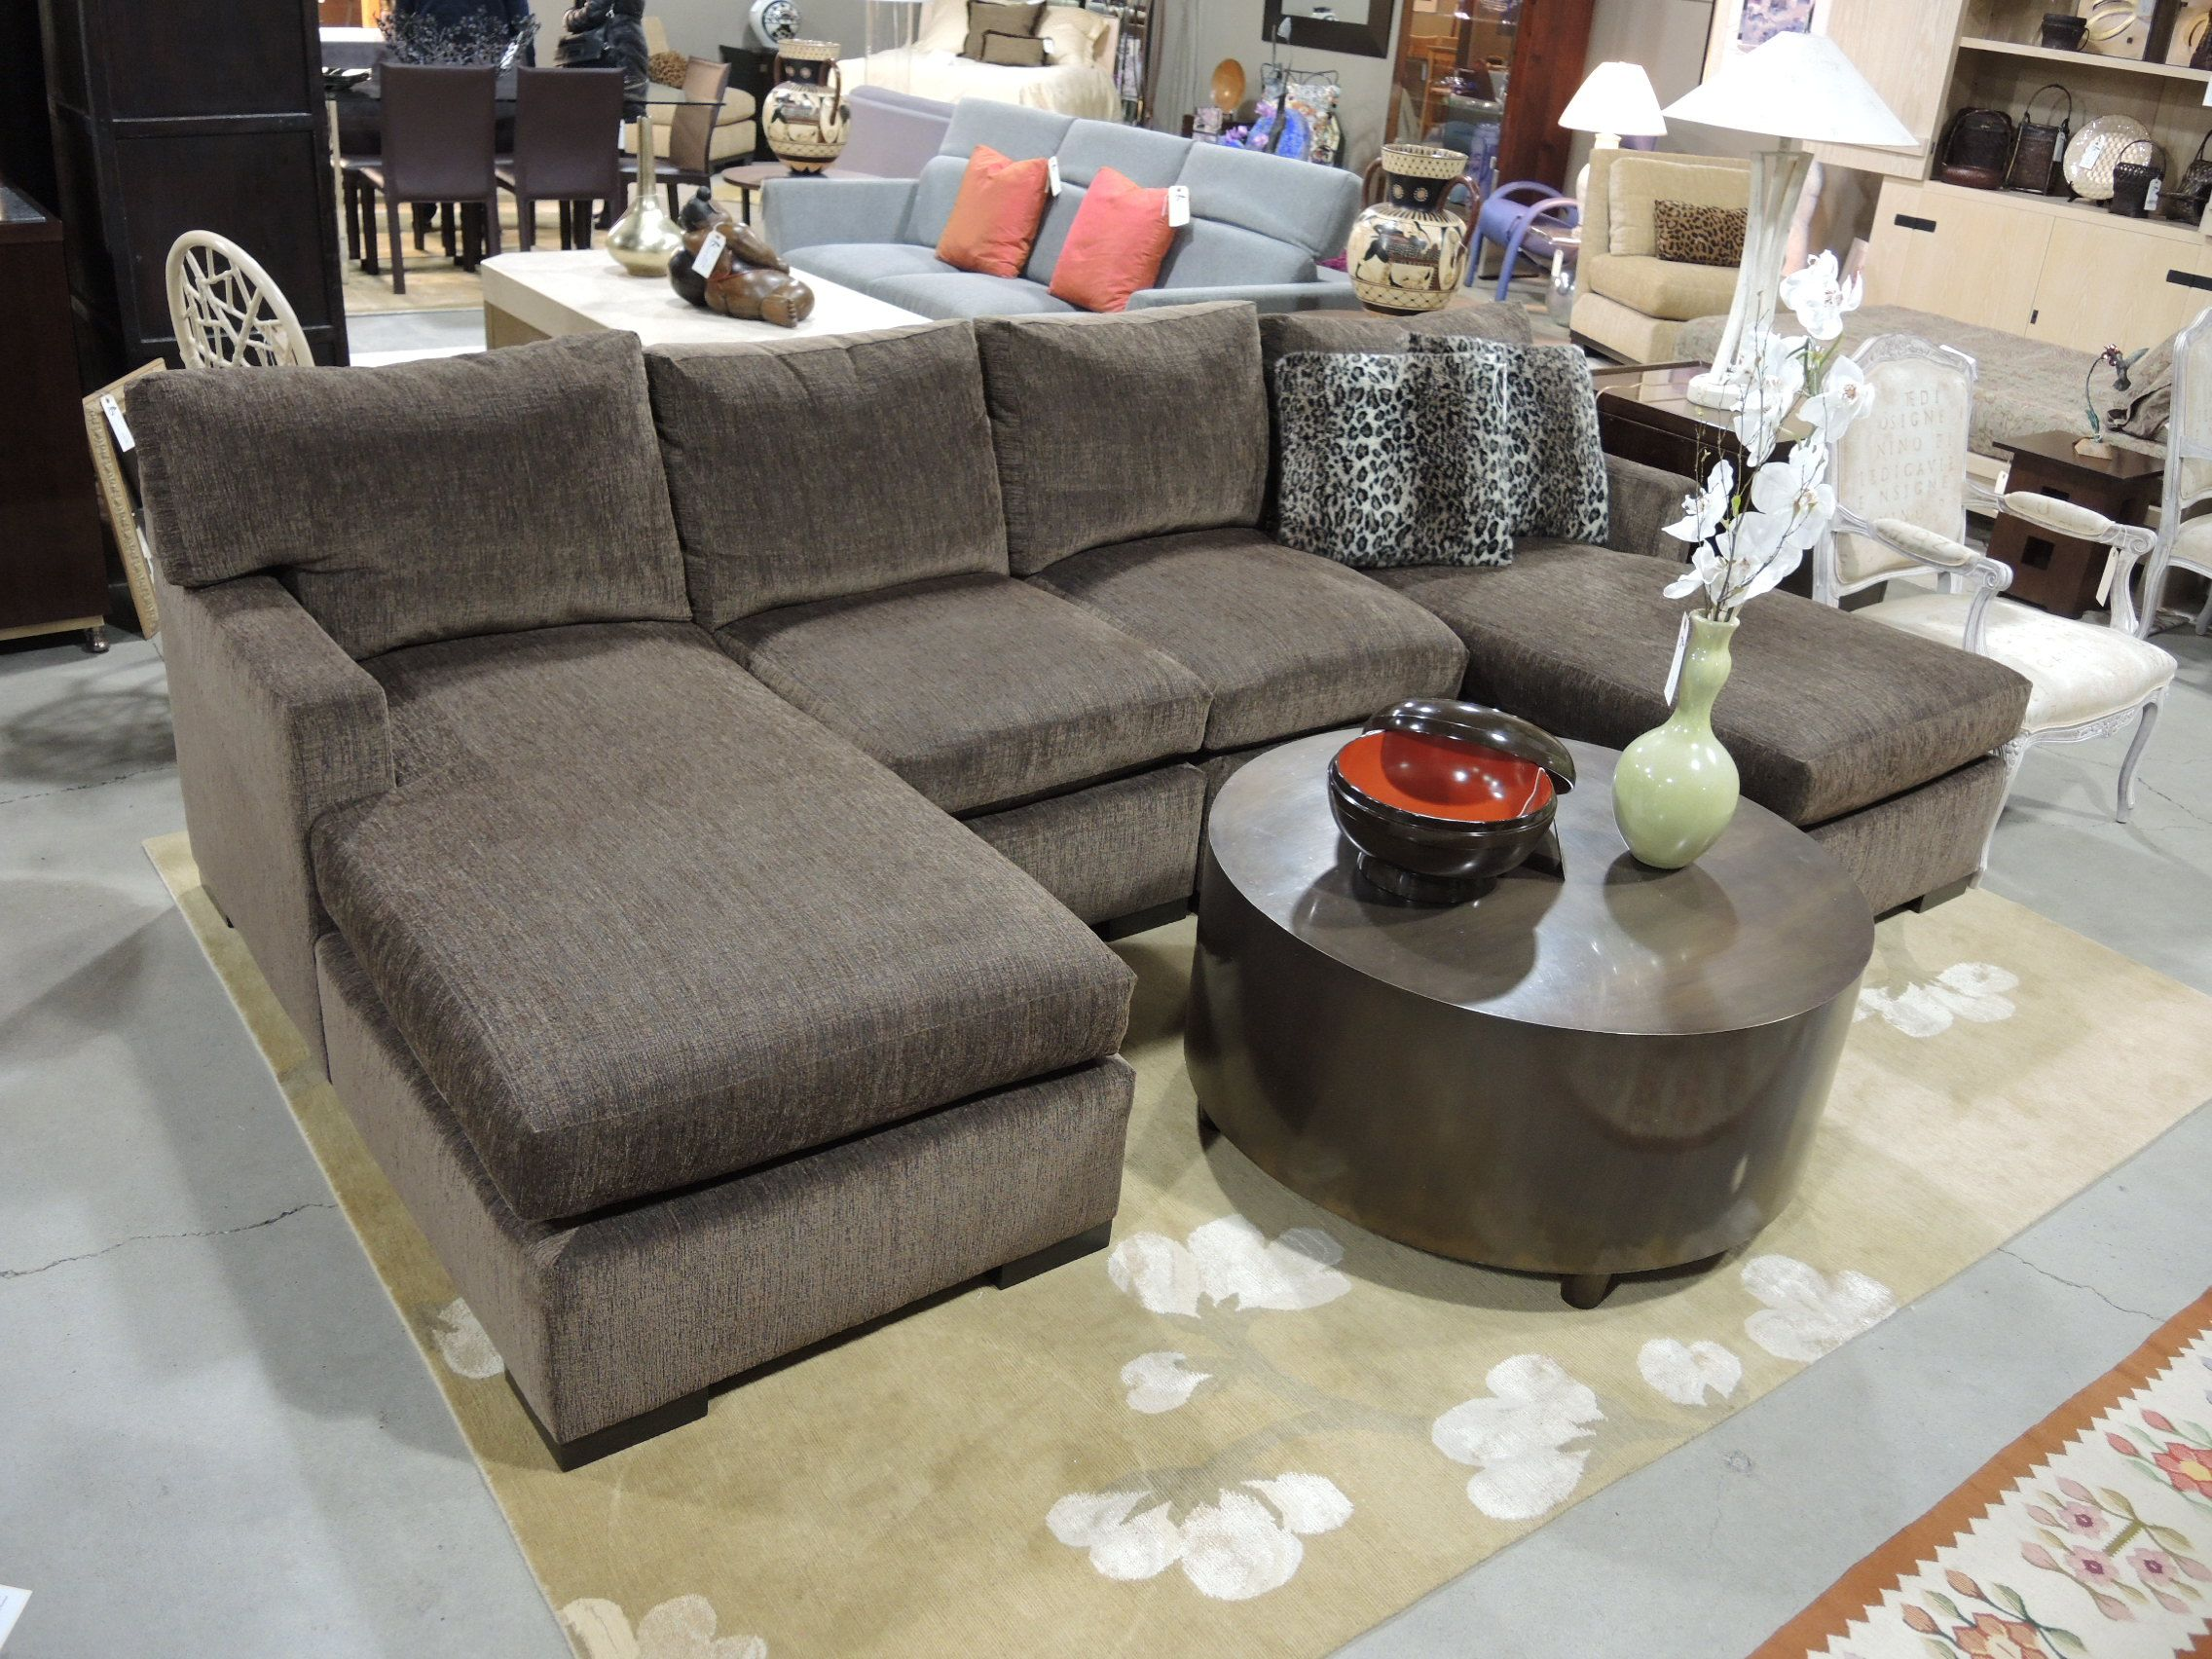 Delightful Inspiring Double Chaise Sectional Sofa 81 About Remodel Rooms To Go Sectional  Sofa With Double Chaise